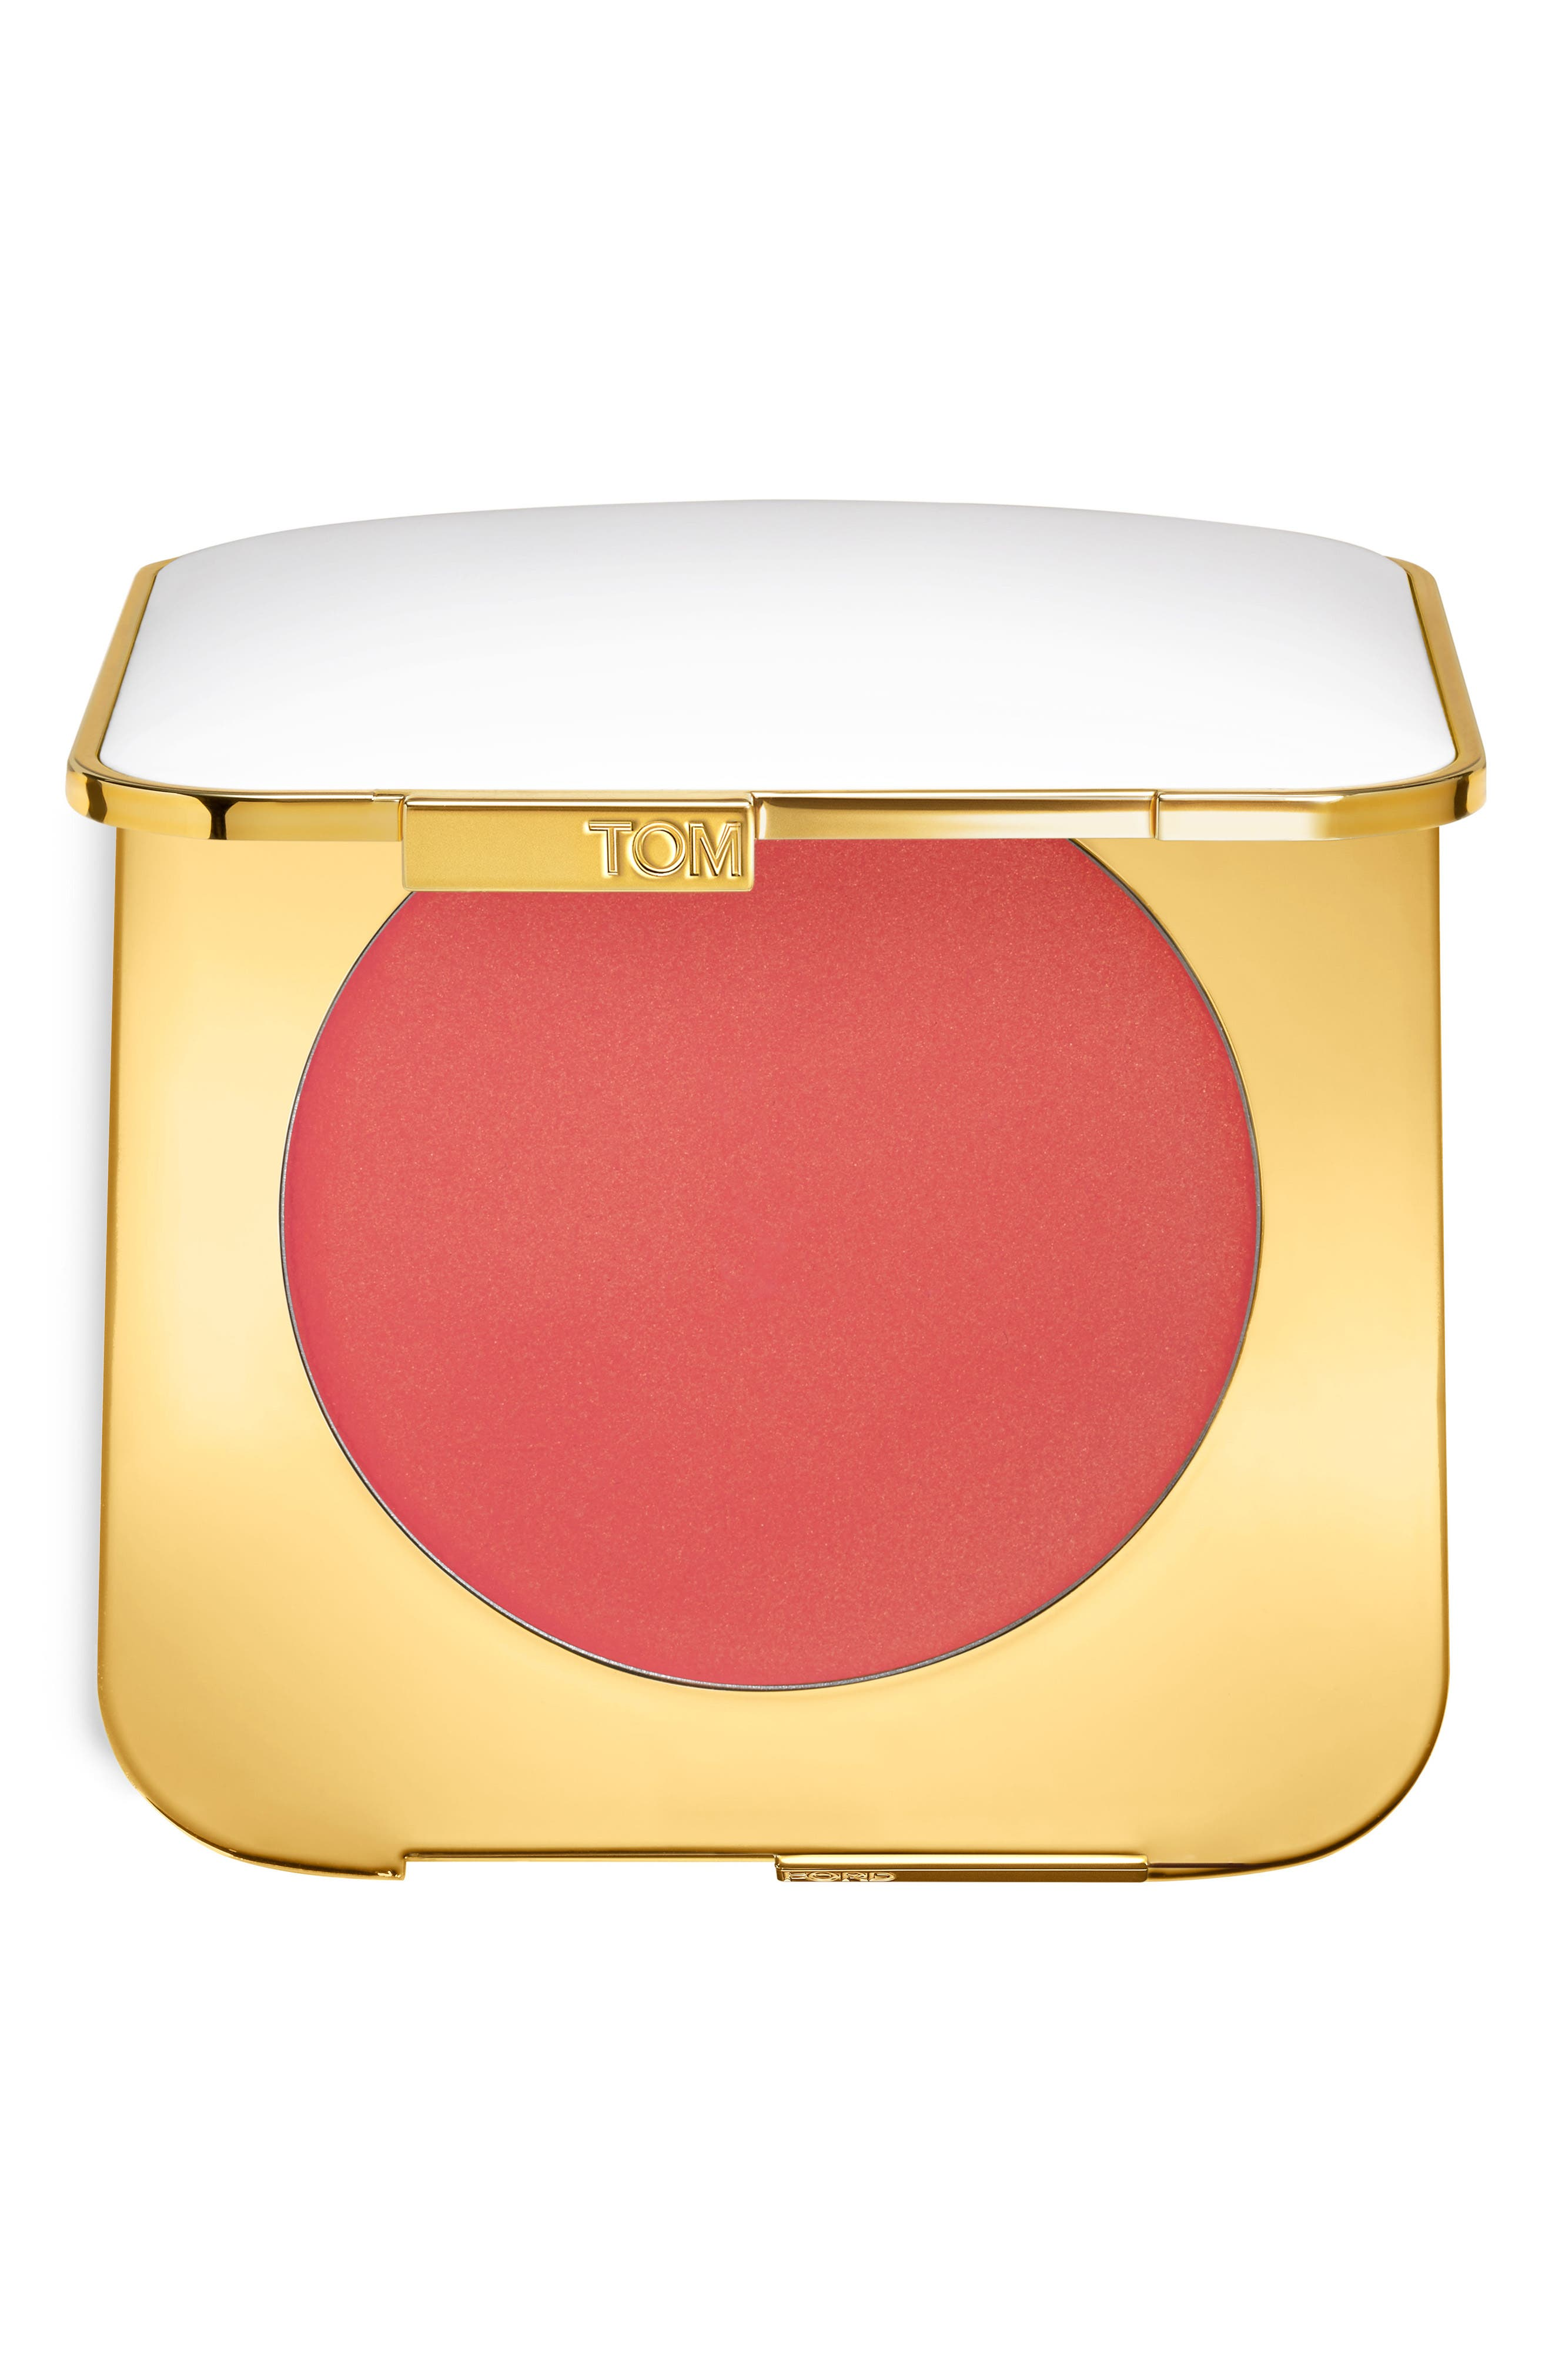 Main Image - Tom Ford Cream Cheek Color